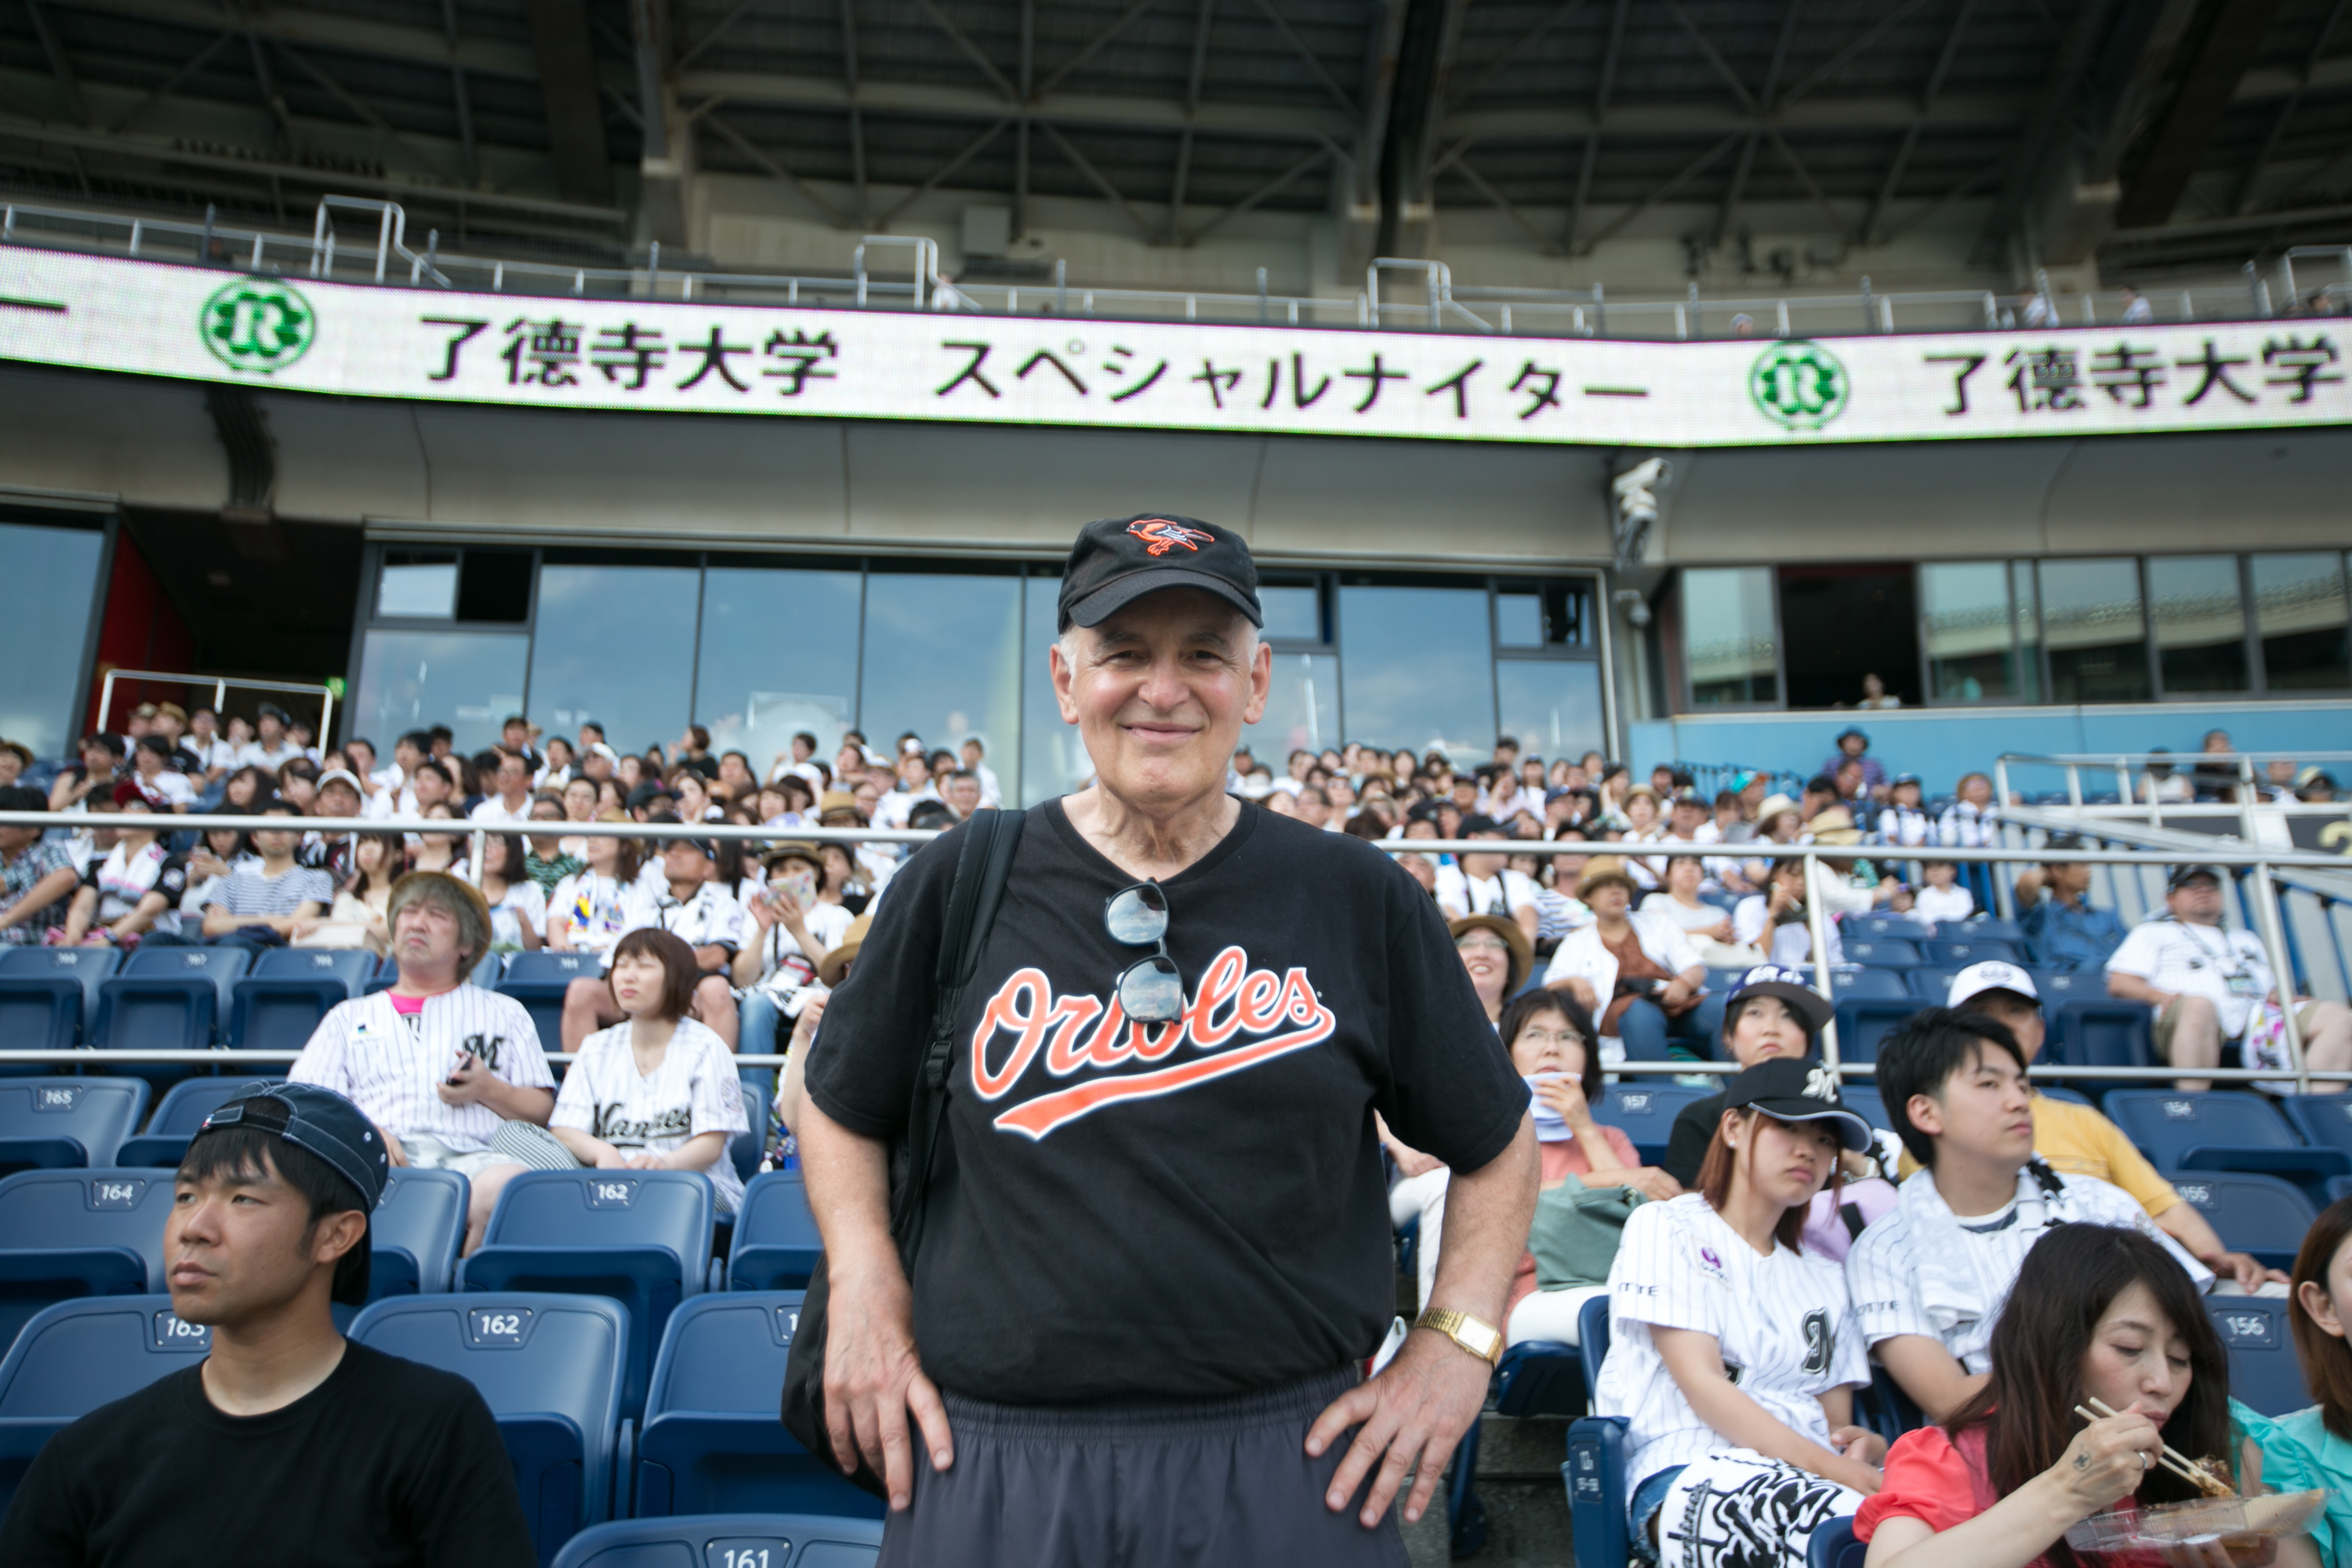 Steven Wisensale, professor of human development and family studies, watches a baseball game in Japan. (Chris Moore for UConn)